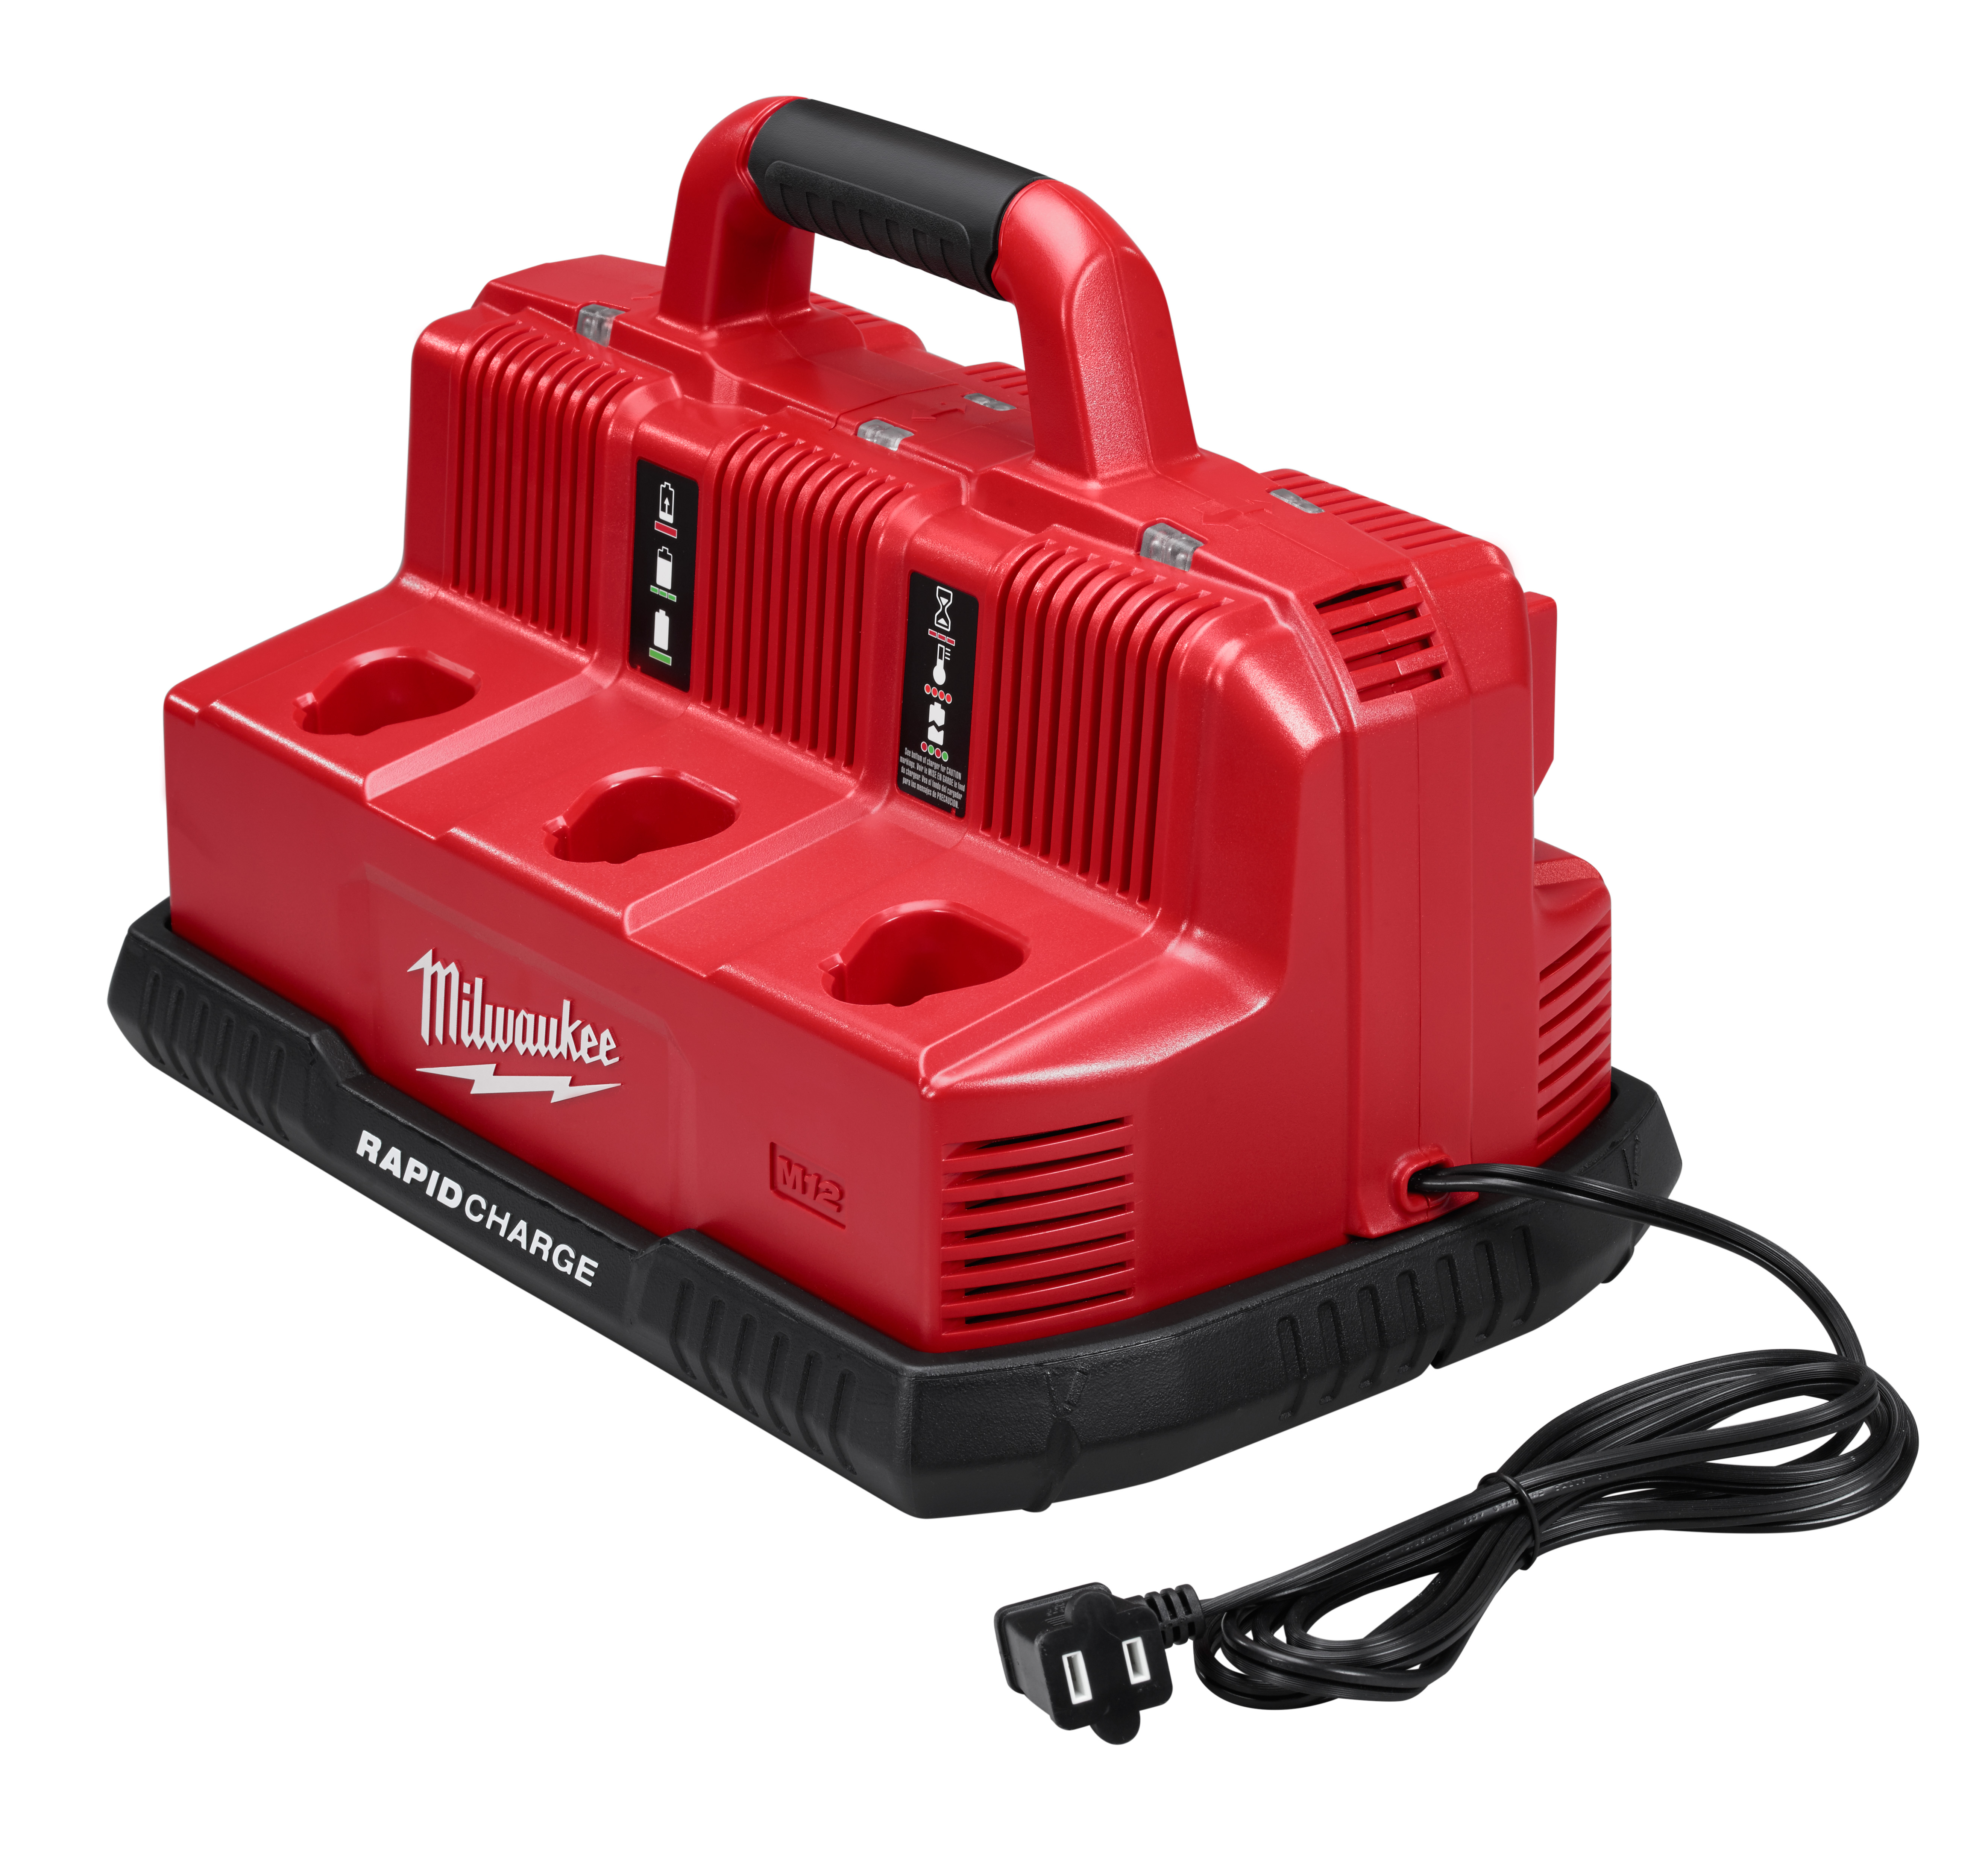 Milwaukee® M18™ M12™ 48-59-1807 Rapid Charge Station, For Use With M12™ and M18™ Battery, Lithium-Ion Battery, 1 hr Charging, 6 Batteries